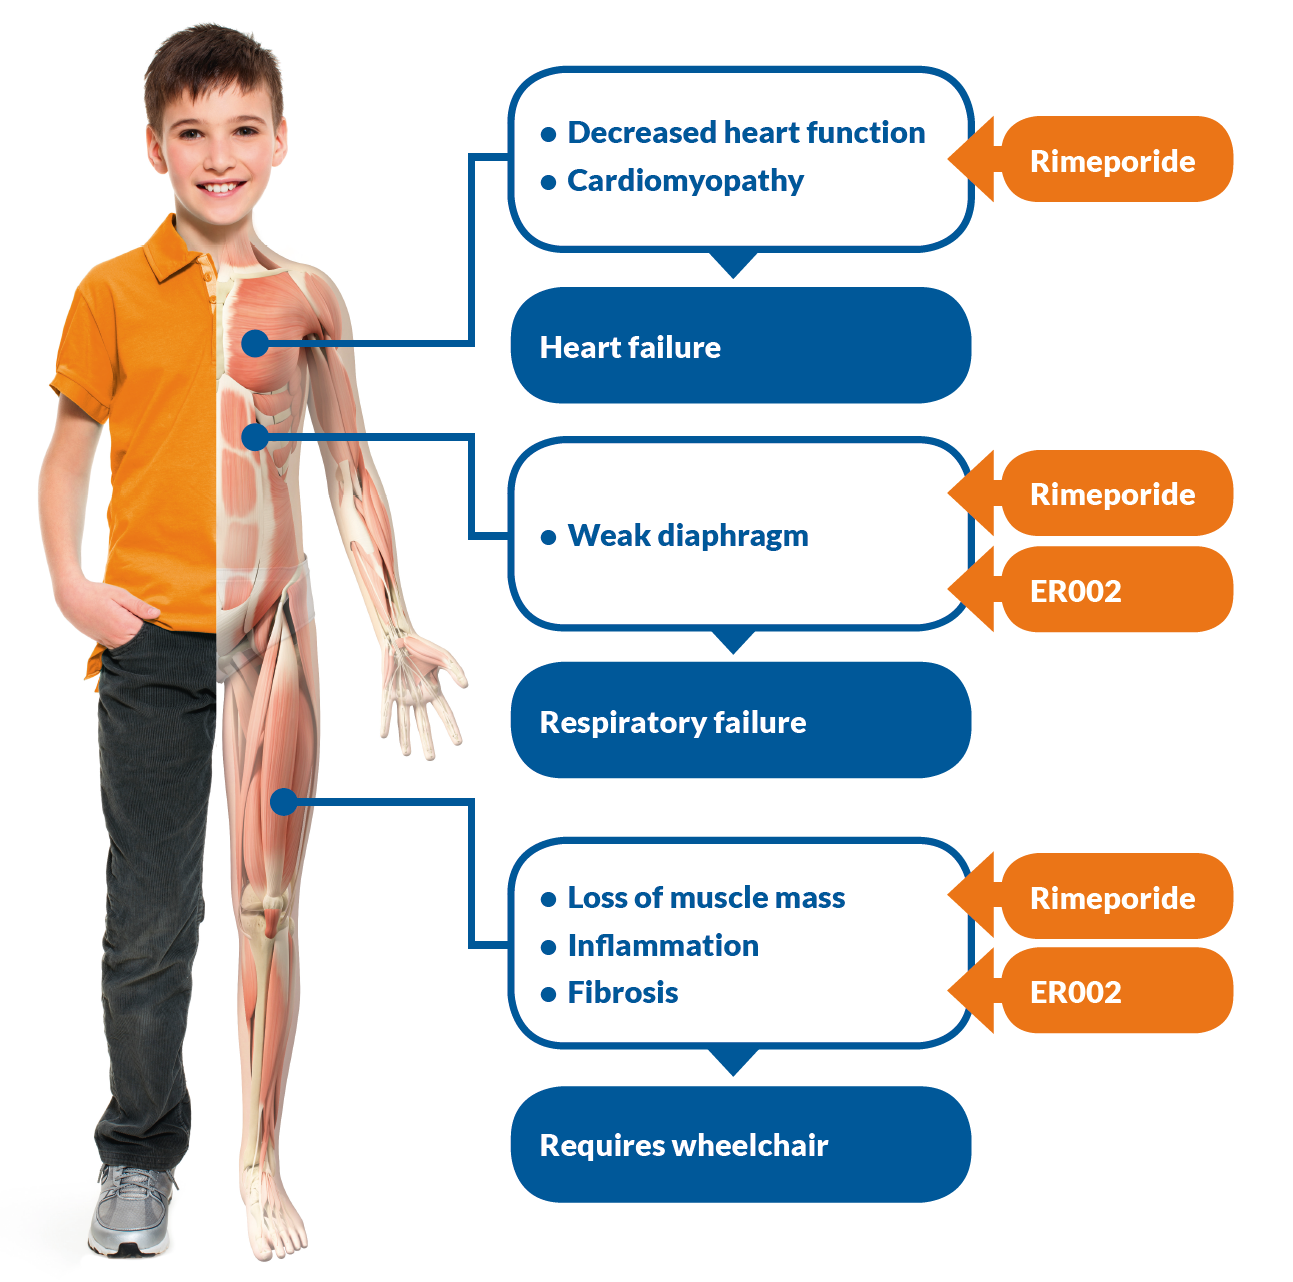 an analysis of duchenne muscular dystrophy Muscular dystrophies are a harling c, chinnery pf, eagle m, bushby k, straub v prevalence of genetic muscle disease in northern england: in-depth analysis of a muscle campbell k change in natural history of duchenne muscular dystrophy with long-term corticosteroid treatment.